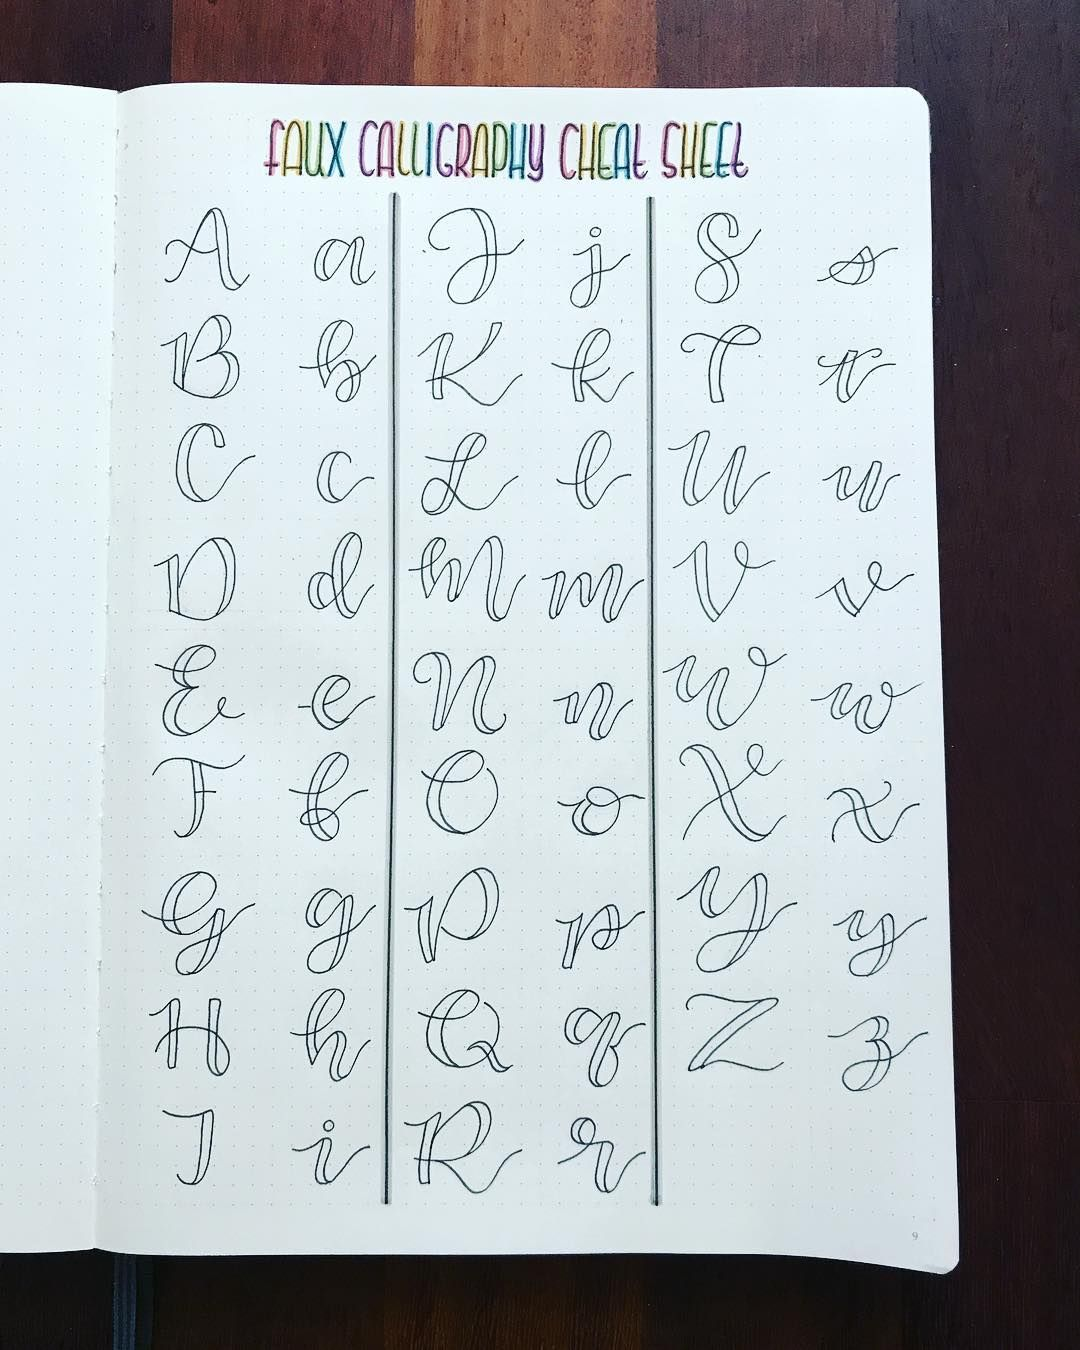 I Ve Made A Faux Calligraphy Cheat Sheet I Used The